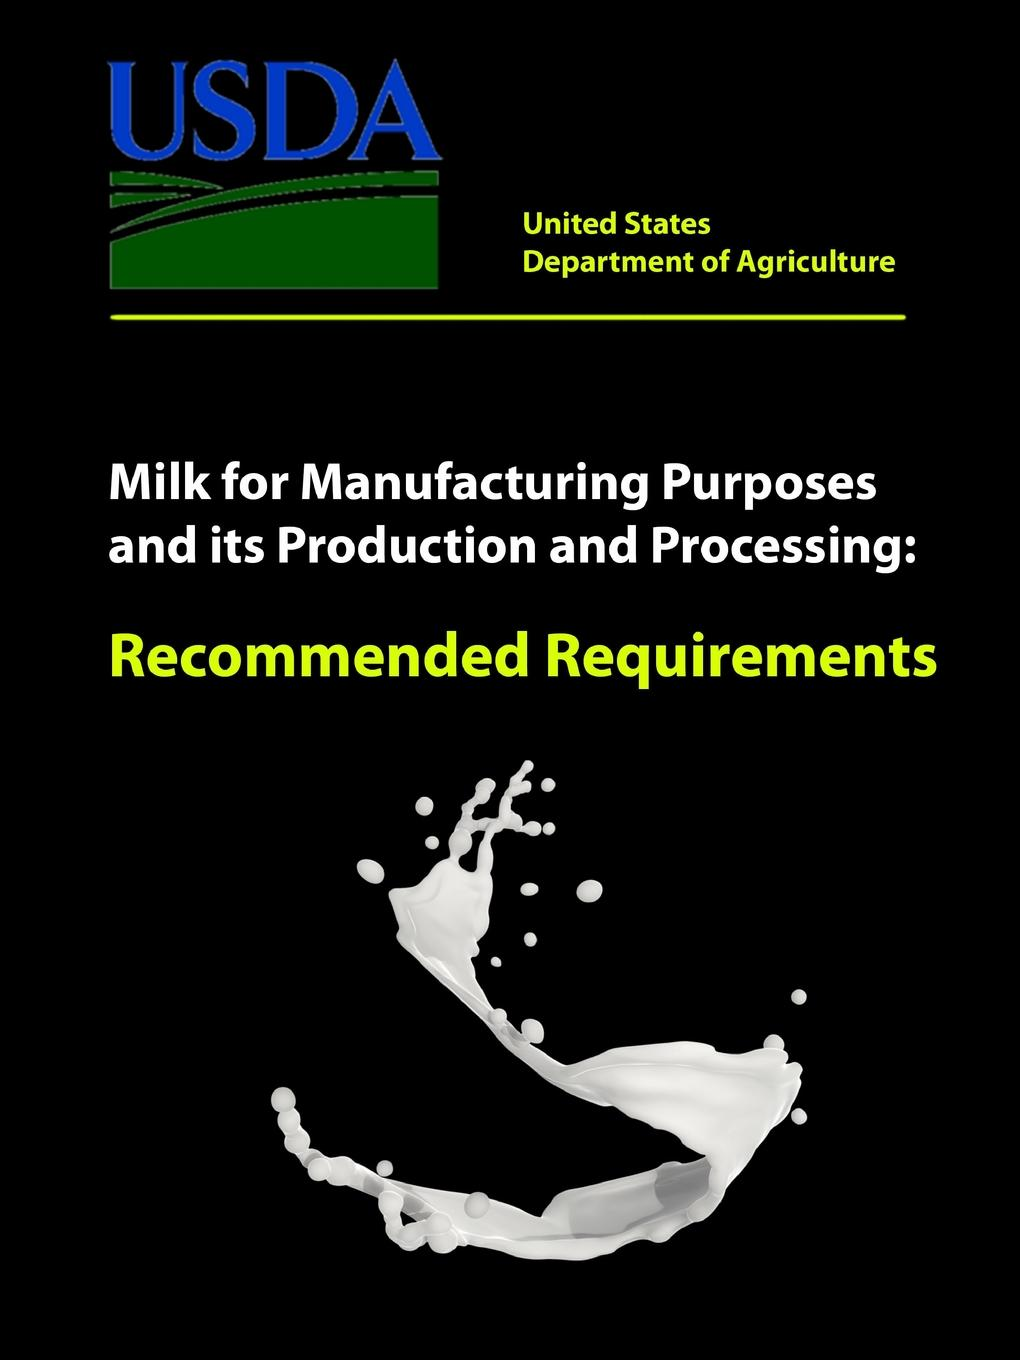 United States Department of Agriculture Milk for Manufacturing Purposes and its Production and Processing - Recommended Requirements fortunately the milk